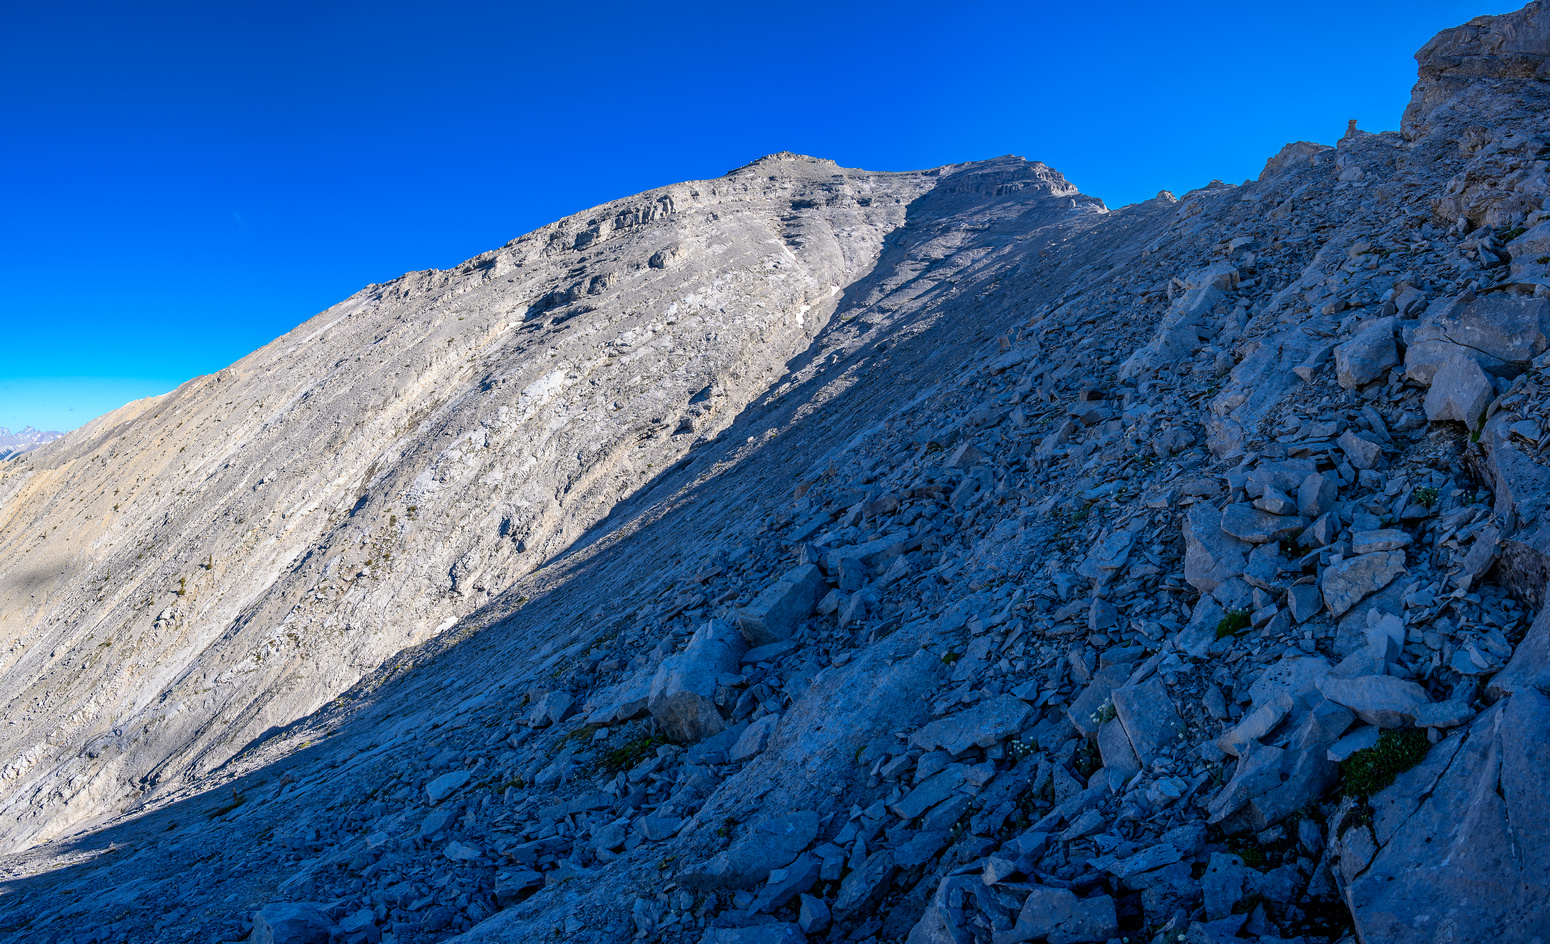 Rather than dealing with slabs and difficult terrain I stay under the ridge on climber's left.